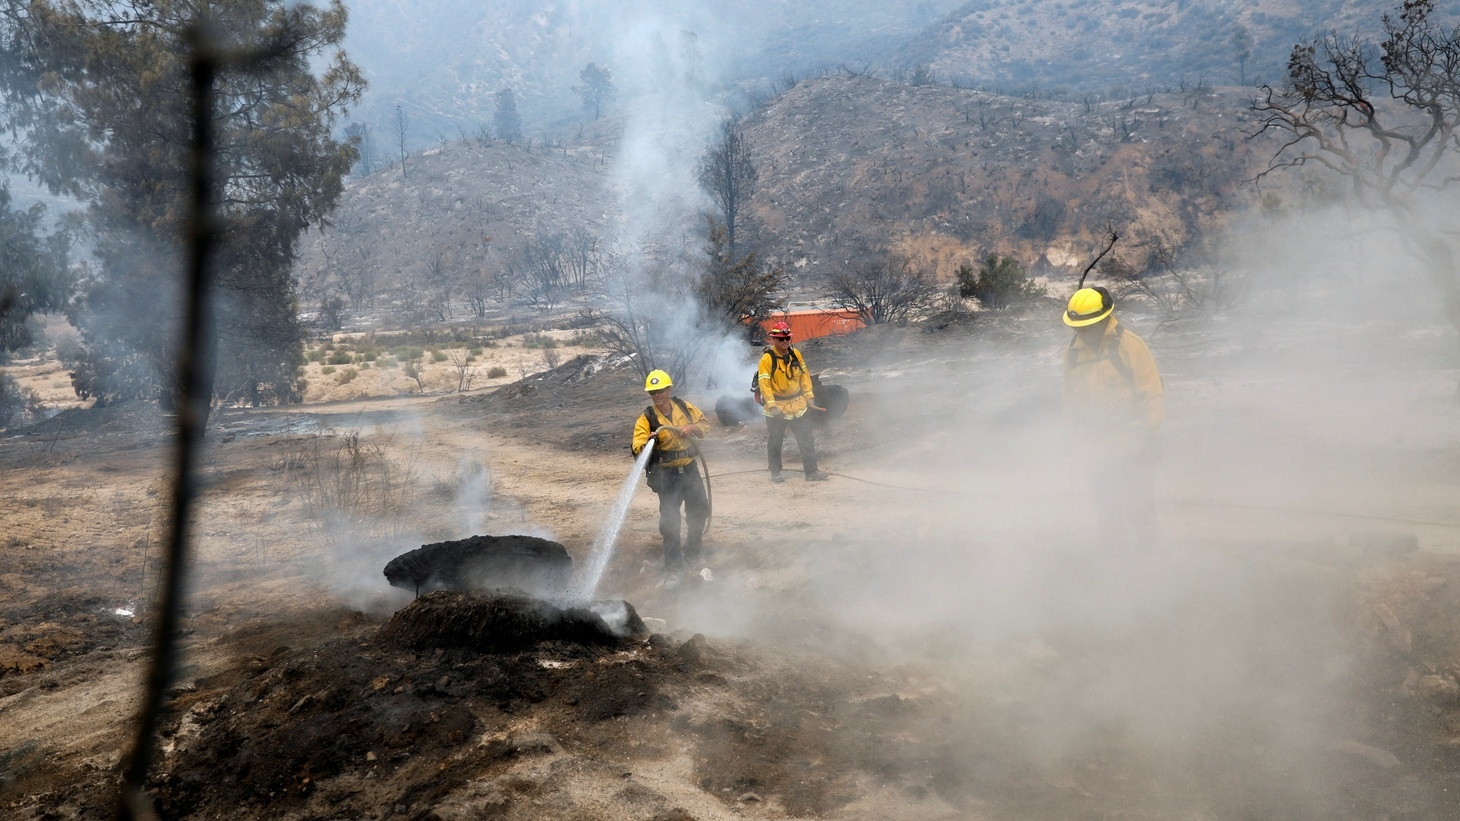 Firefighters extinguish hot spots as the fast-moving Lake Fire burns in a mountainous area of Angeles National Forest north of Los Angeles, California, U.S. August 13, 2020.